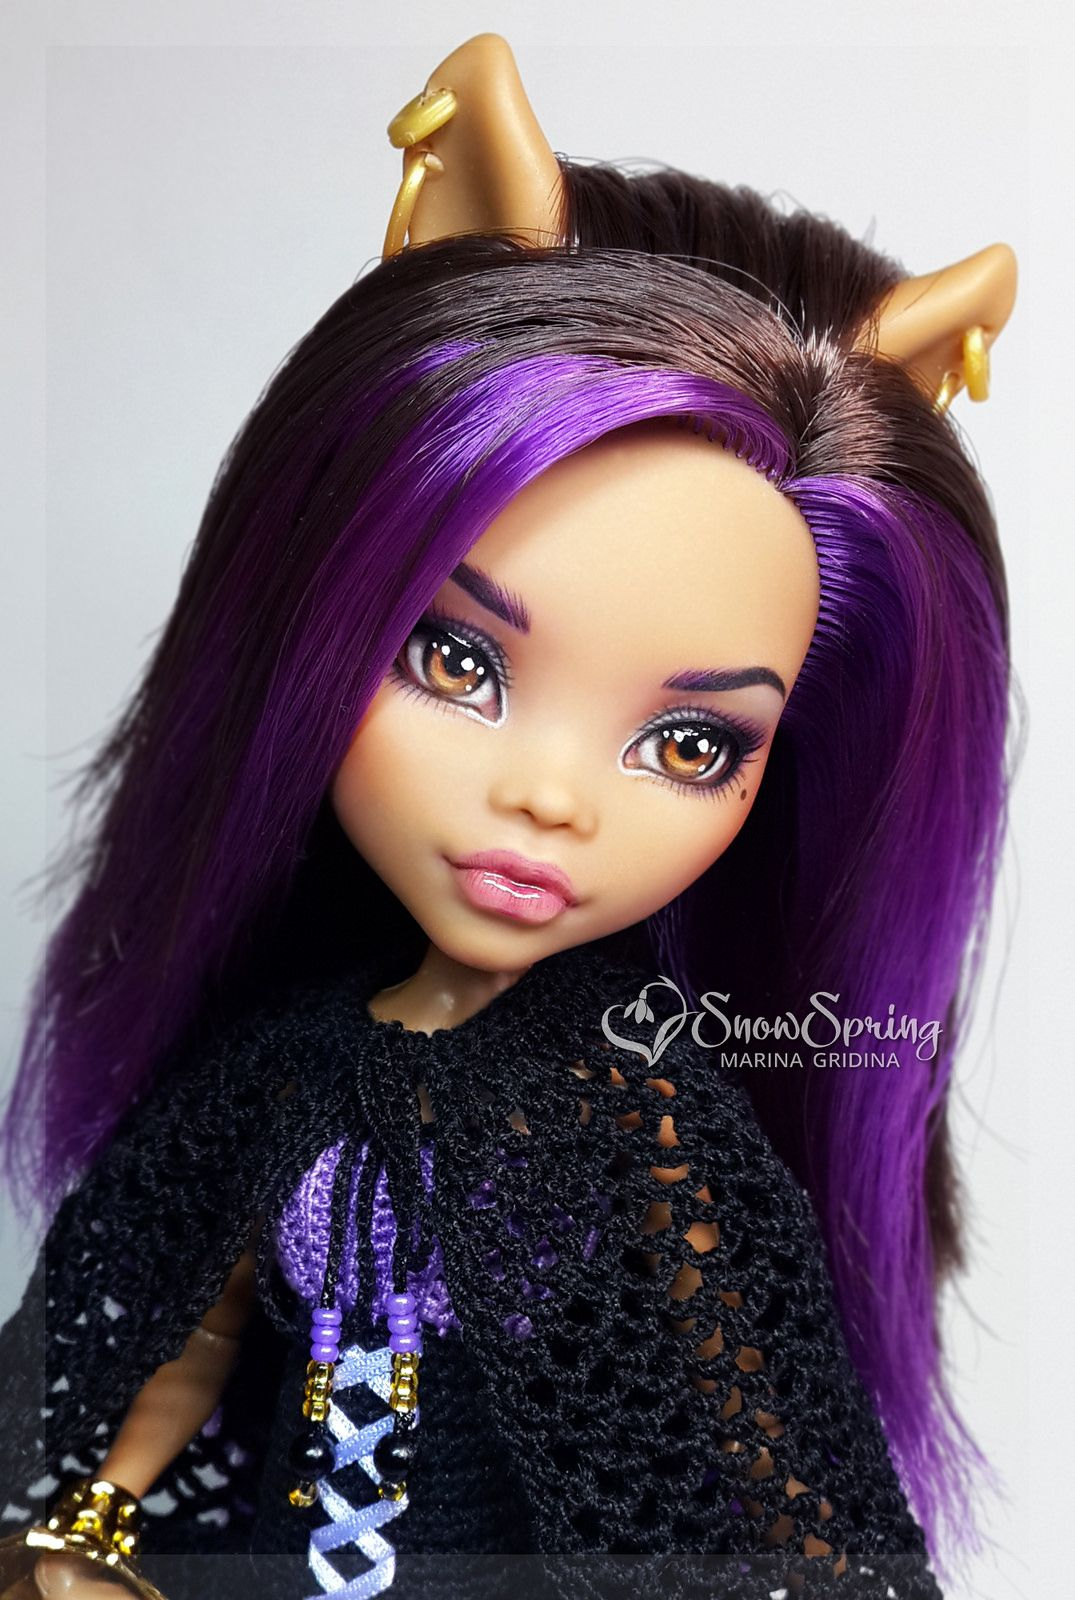 OOAK Clawdeen Wolf | to make a home    | Monster dolls, Monster high